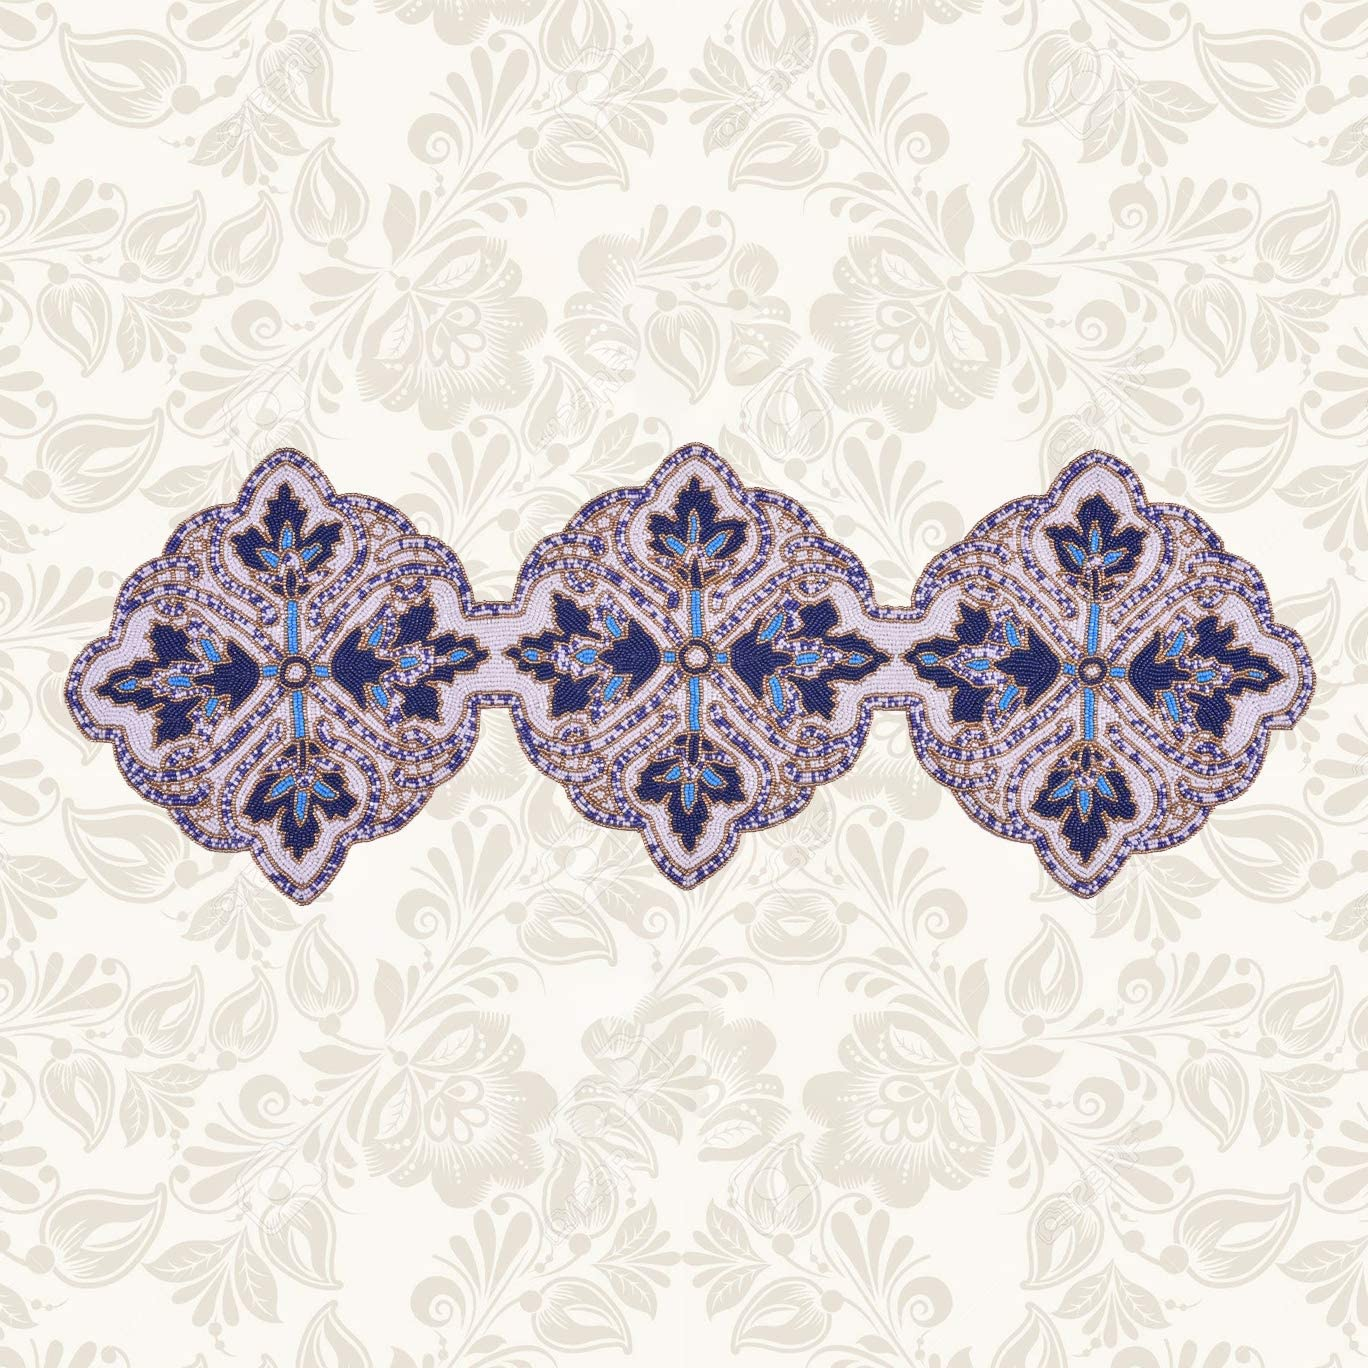 Decozen Embroidered Deluxe Memphis Mall Beaded Runner with Satin 36